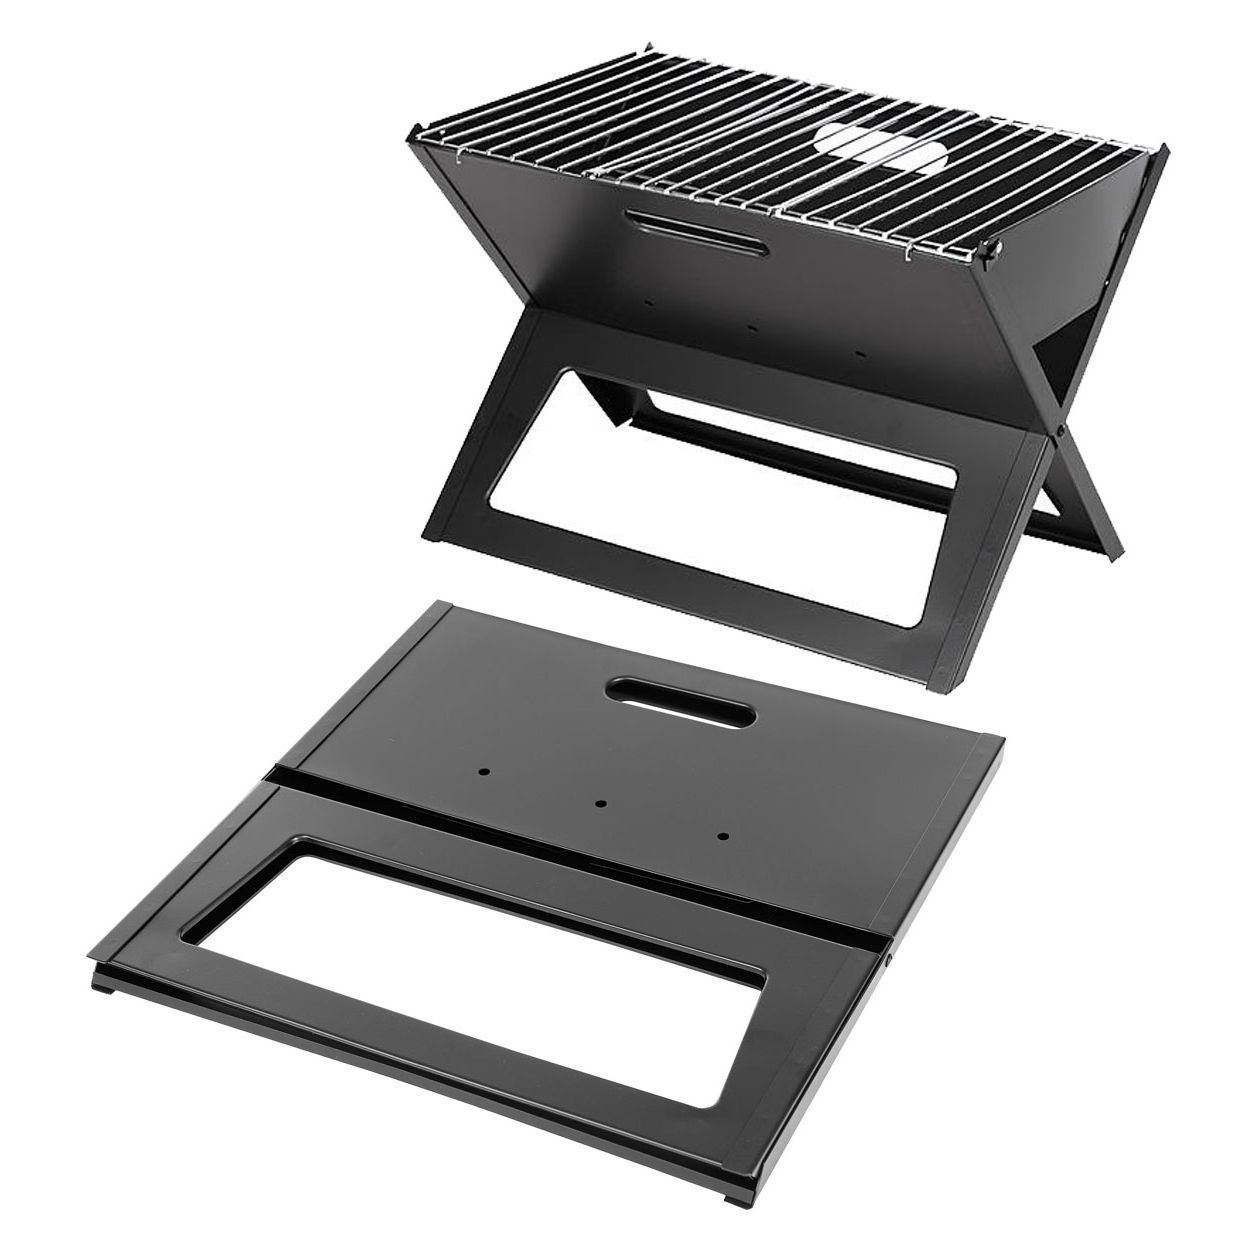 Small Barbecue Grill Hot Item Portable Charcoal Grill Folding Small Outdoor Patio Table Top Bbq Barbecue Steel Grill